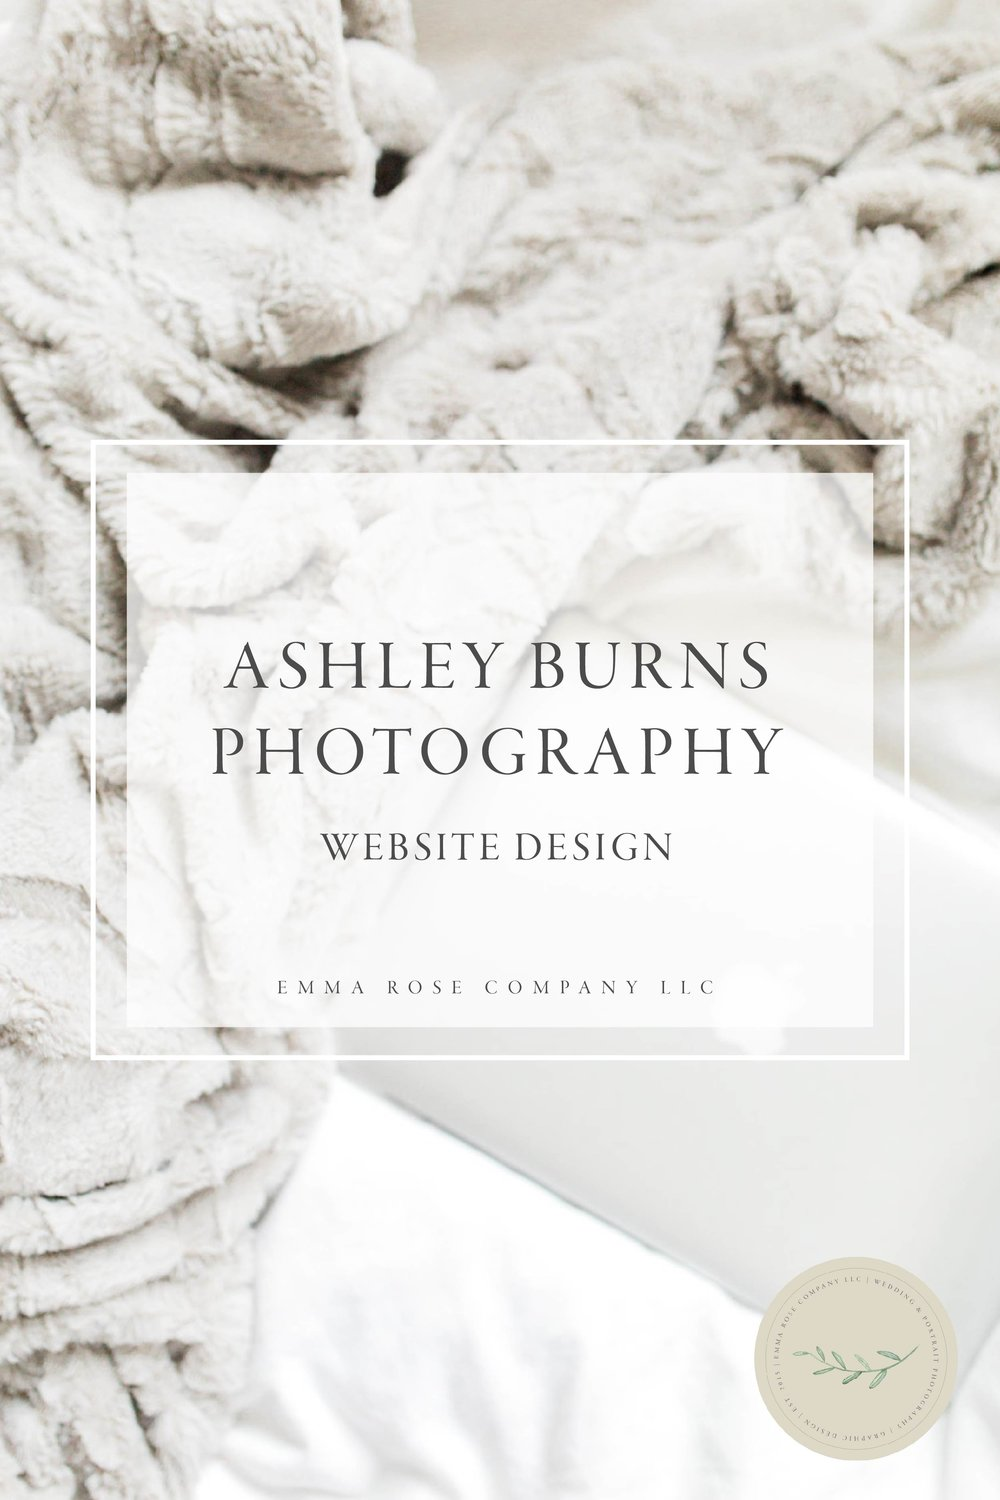 Ashley Burns Photography Website Design by Emma Rose Company LLC